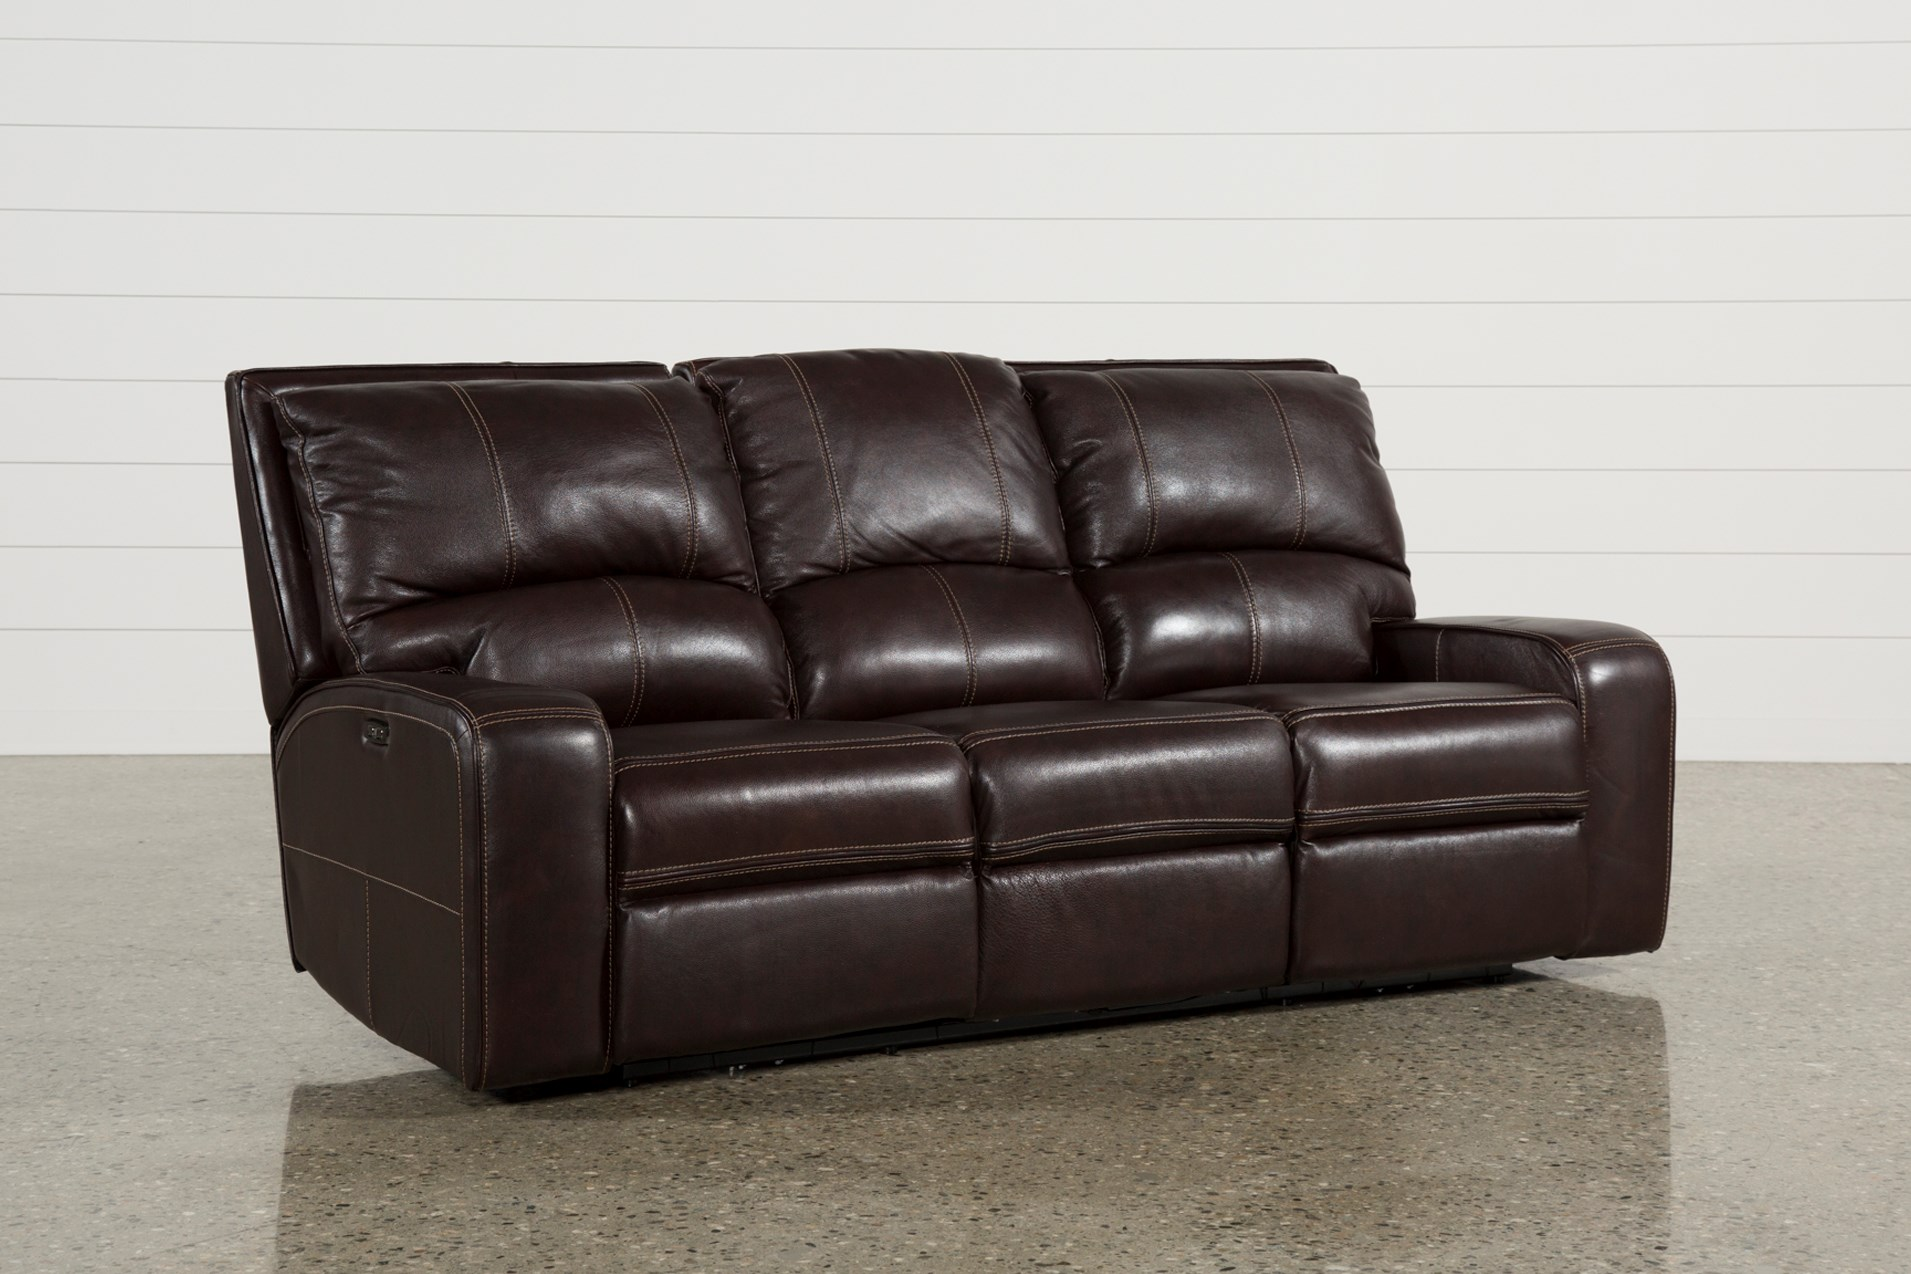 Clyde Dark Brown Leather Power Reclining Sofa W/Power Headrest & Usb ...